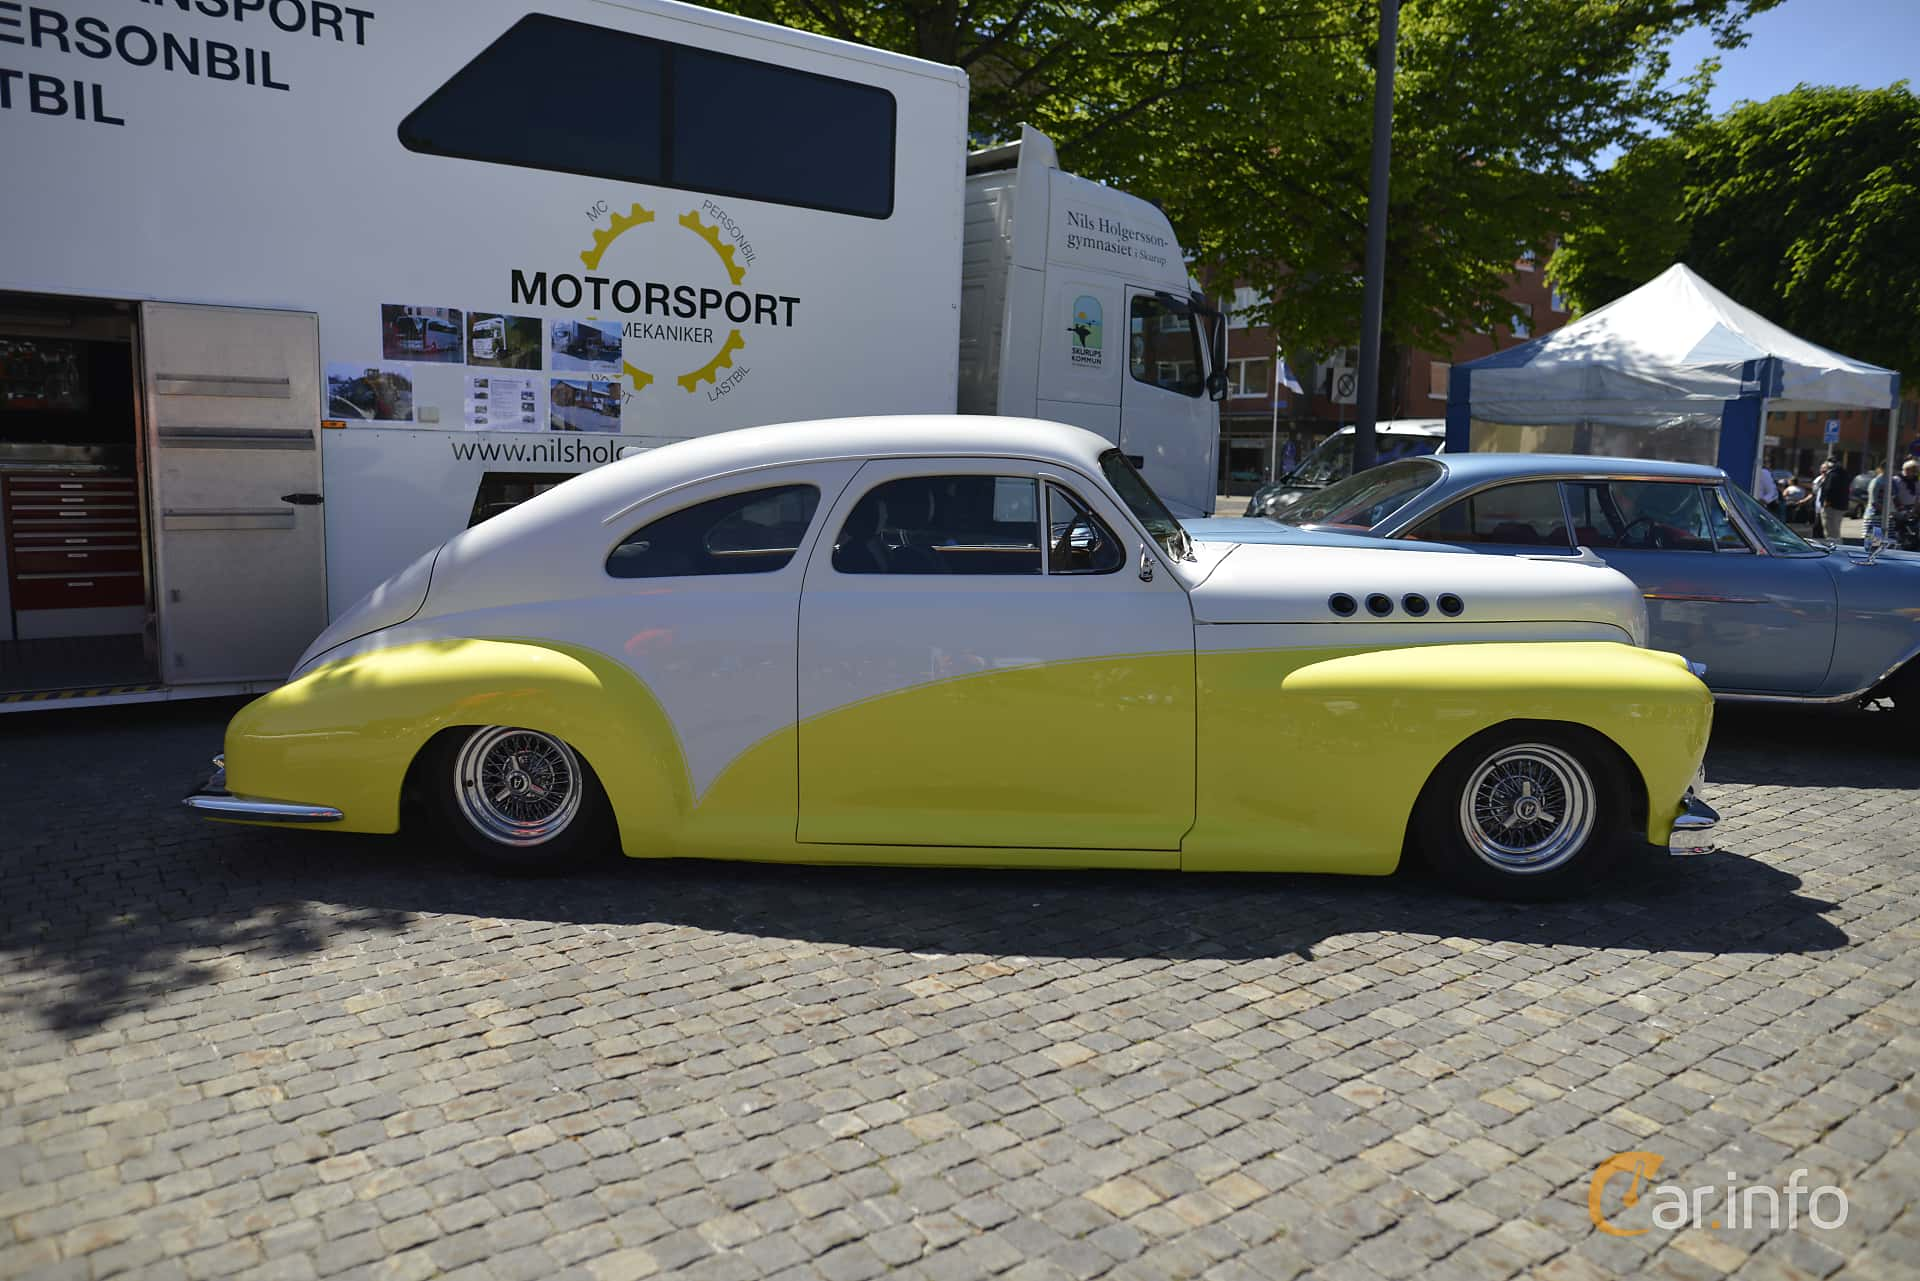 5 Images Of Oldsmobile Dynamic Cruiser 76 Club Sedan 39 Manual 1941 Coupe Side 101ps At Trelleborg